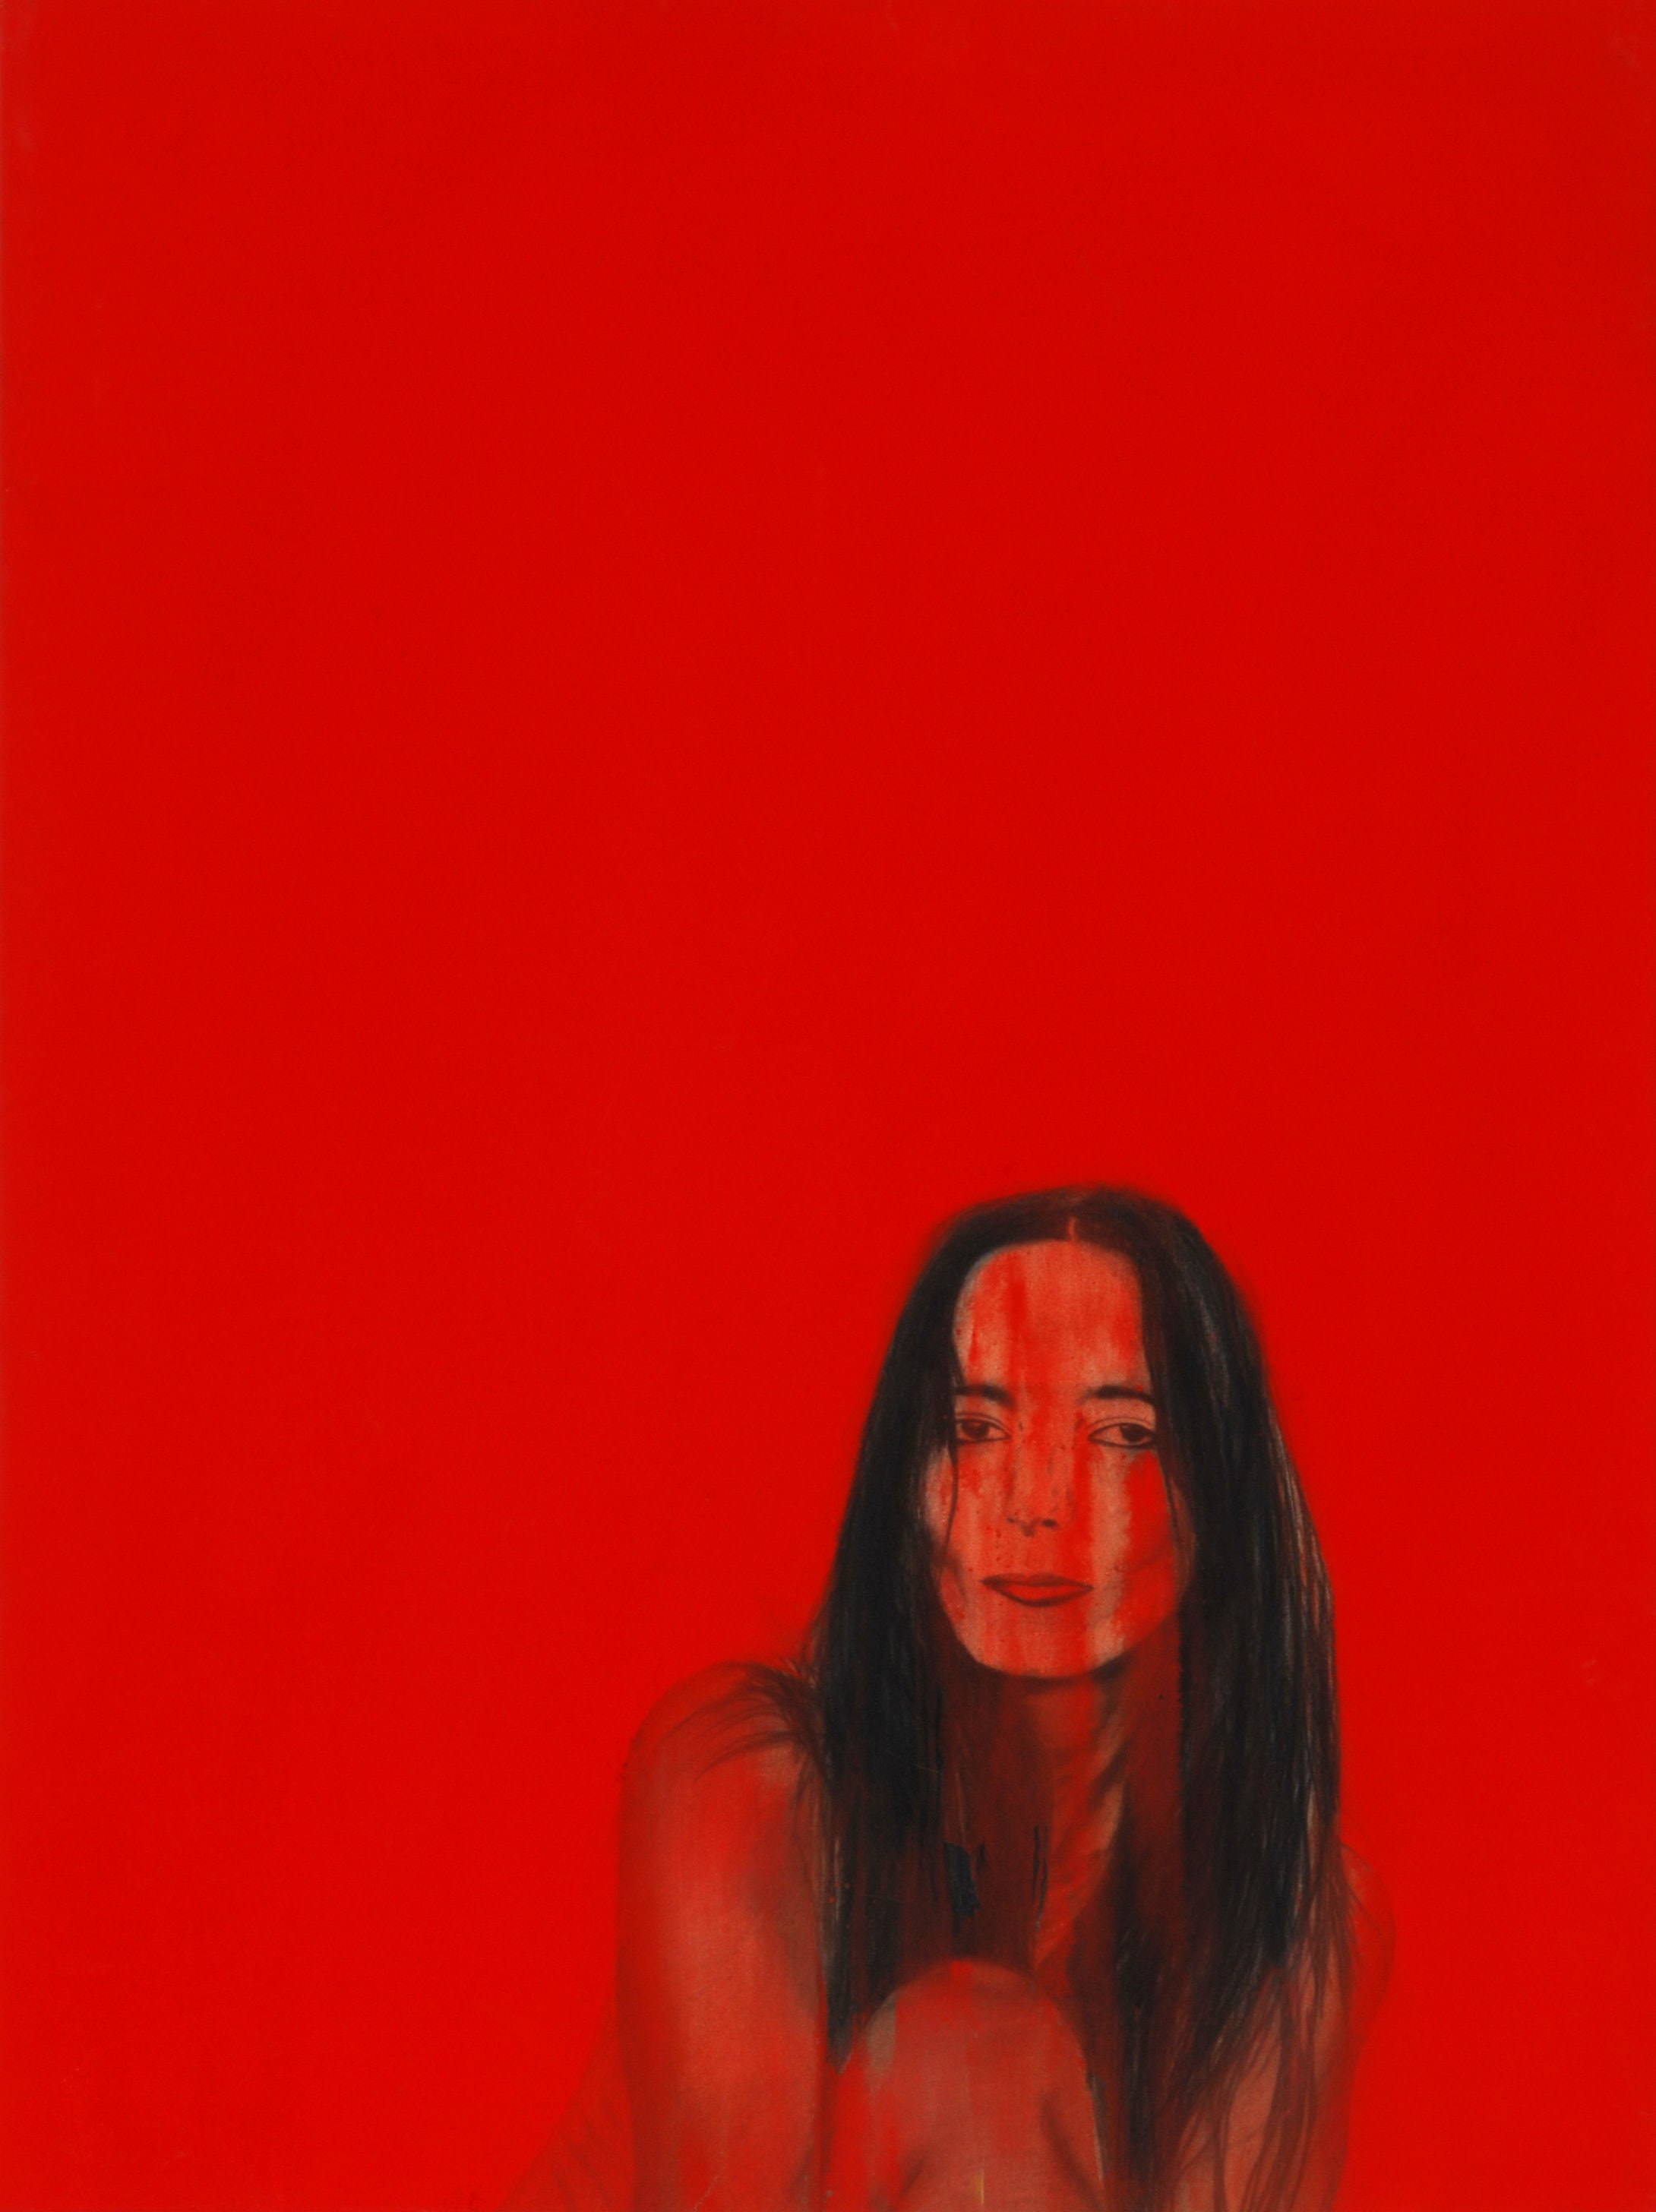 Self portrait in red - 100 x 130 cm - 2003